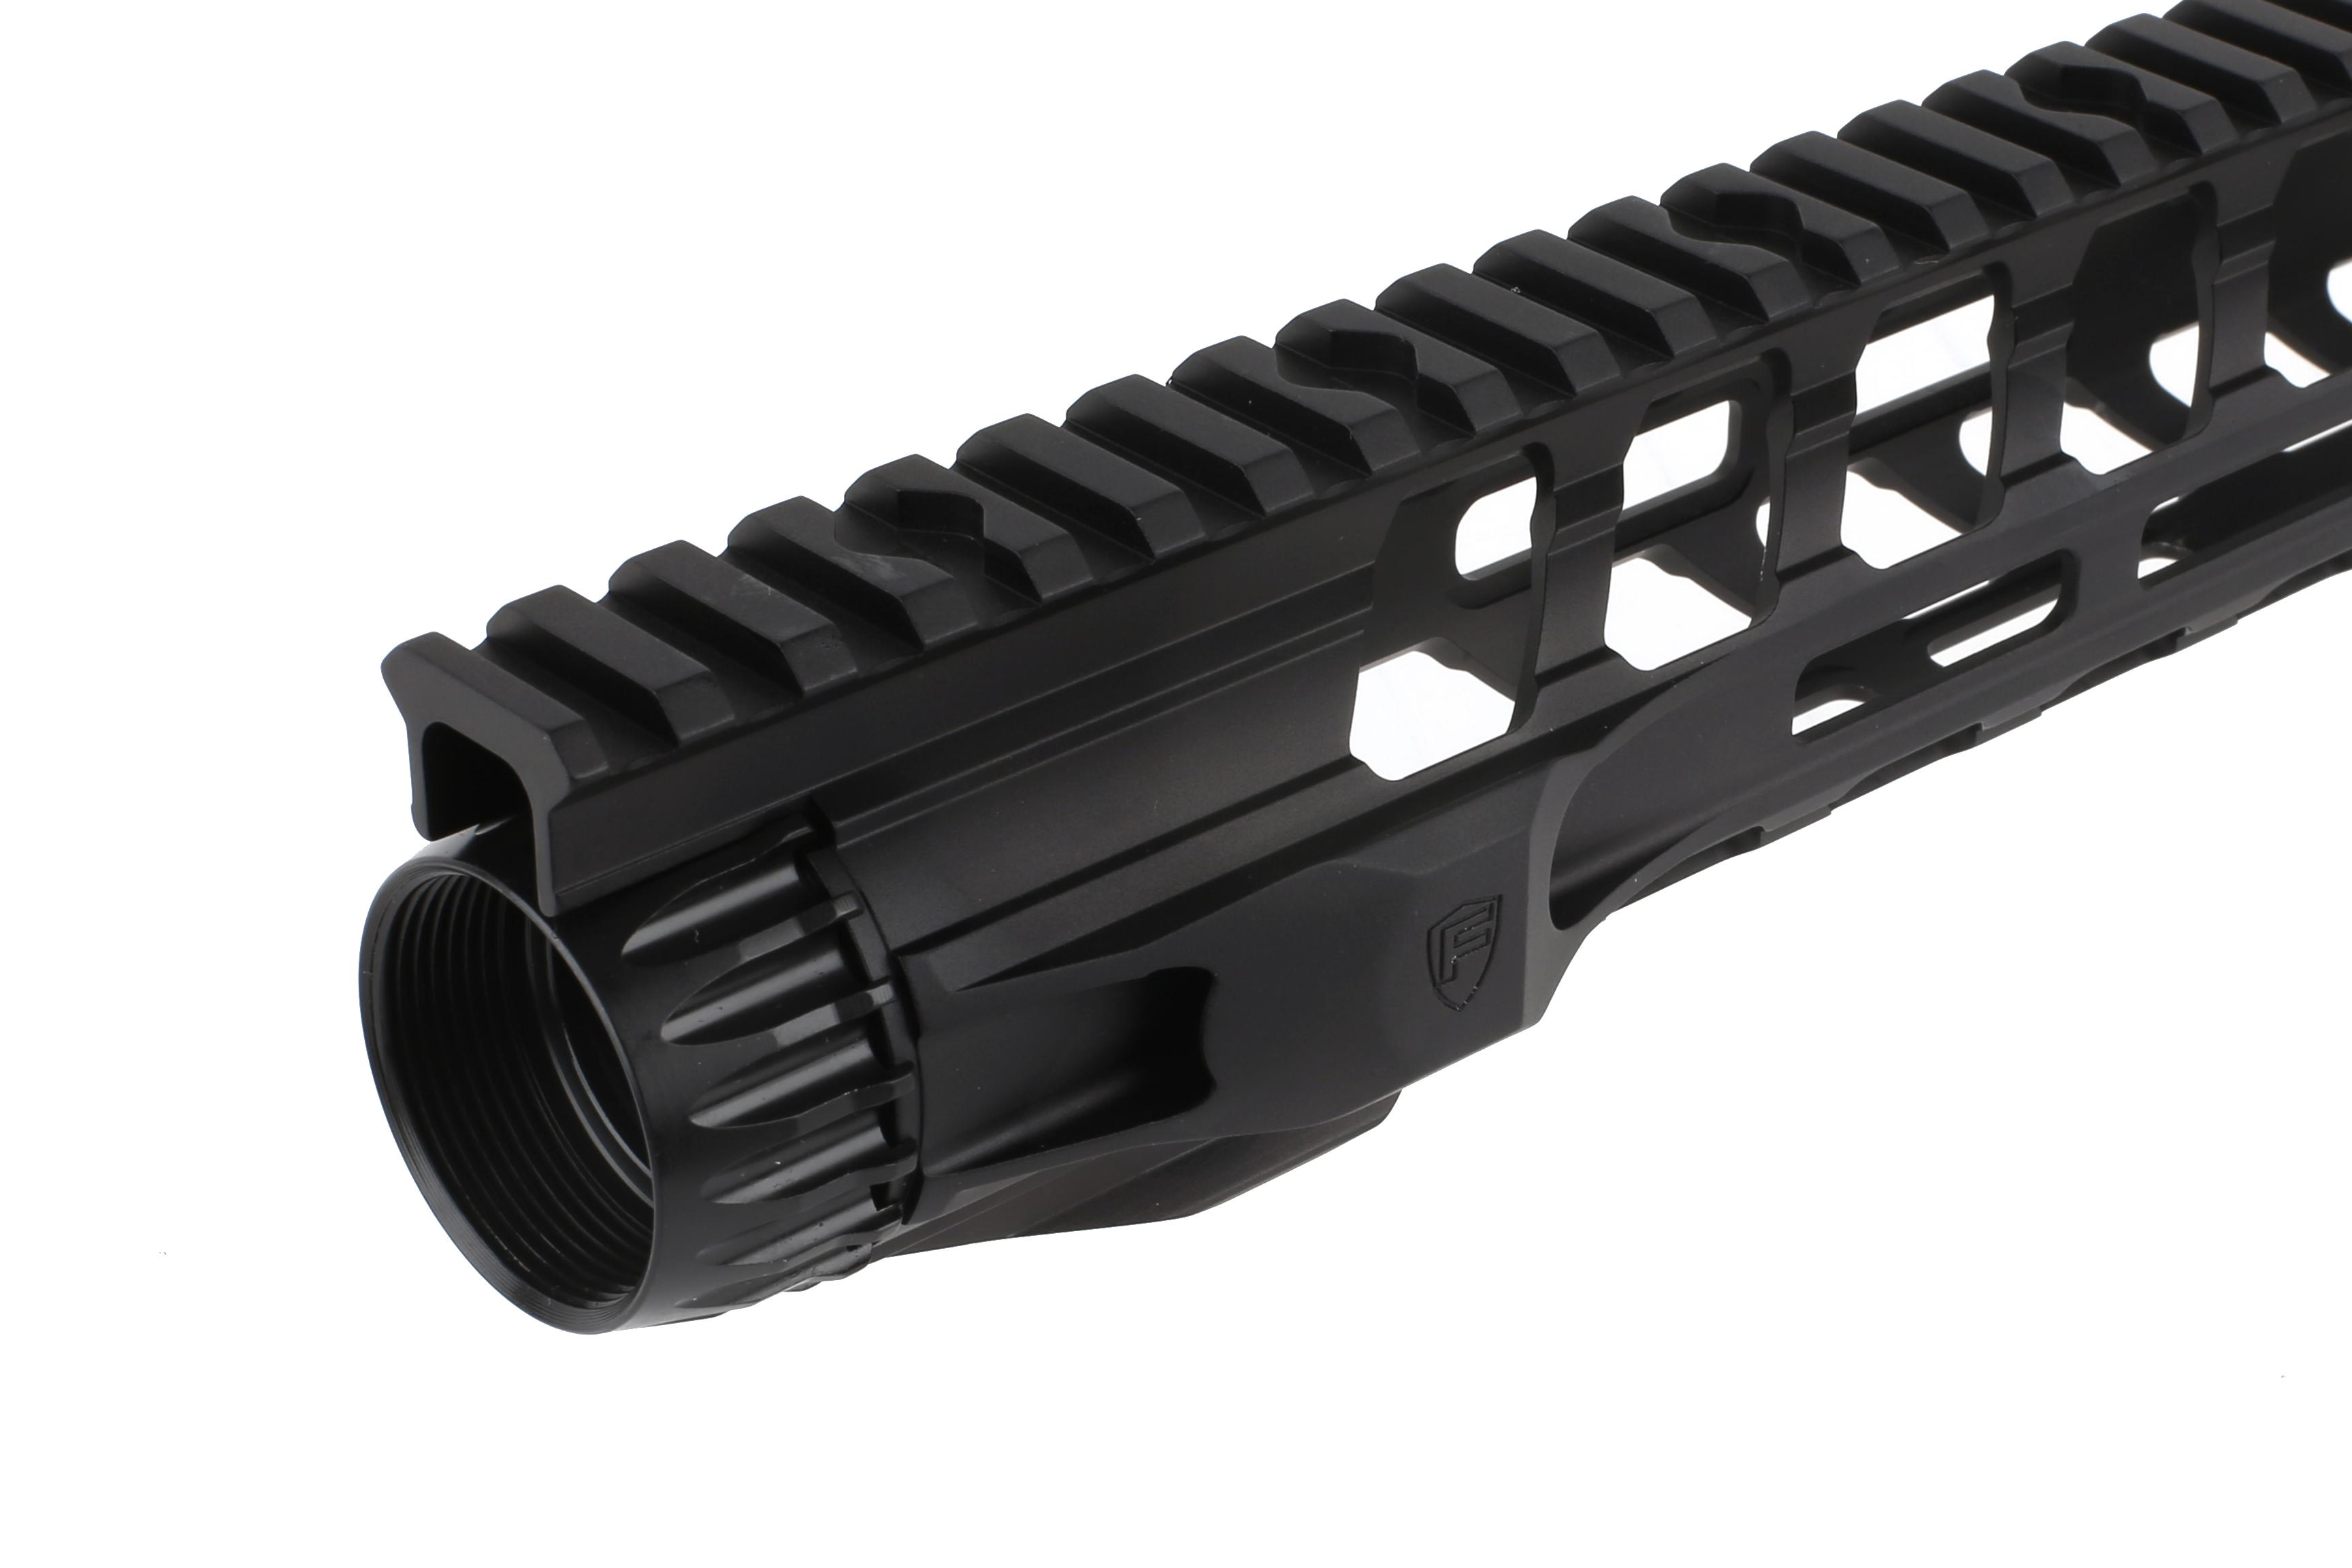 Fortis Night Rail 5.56 Rail System